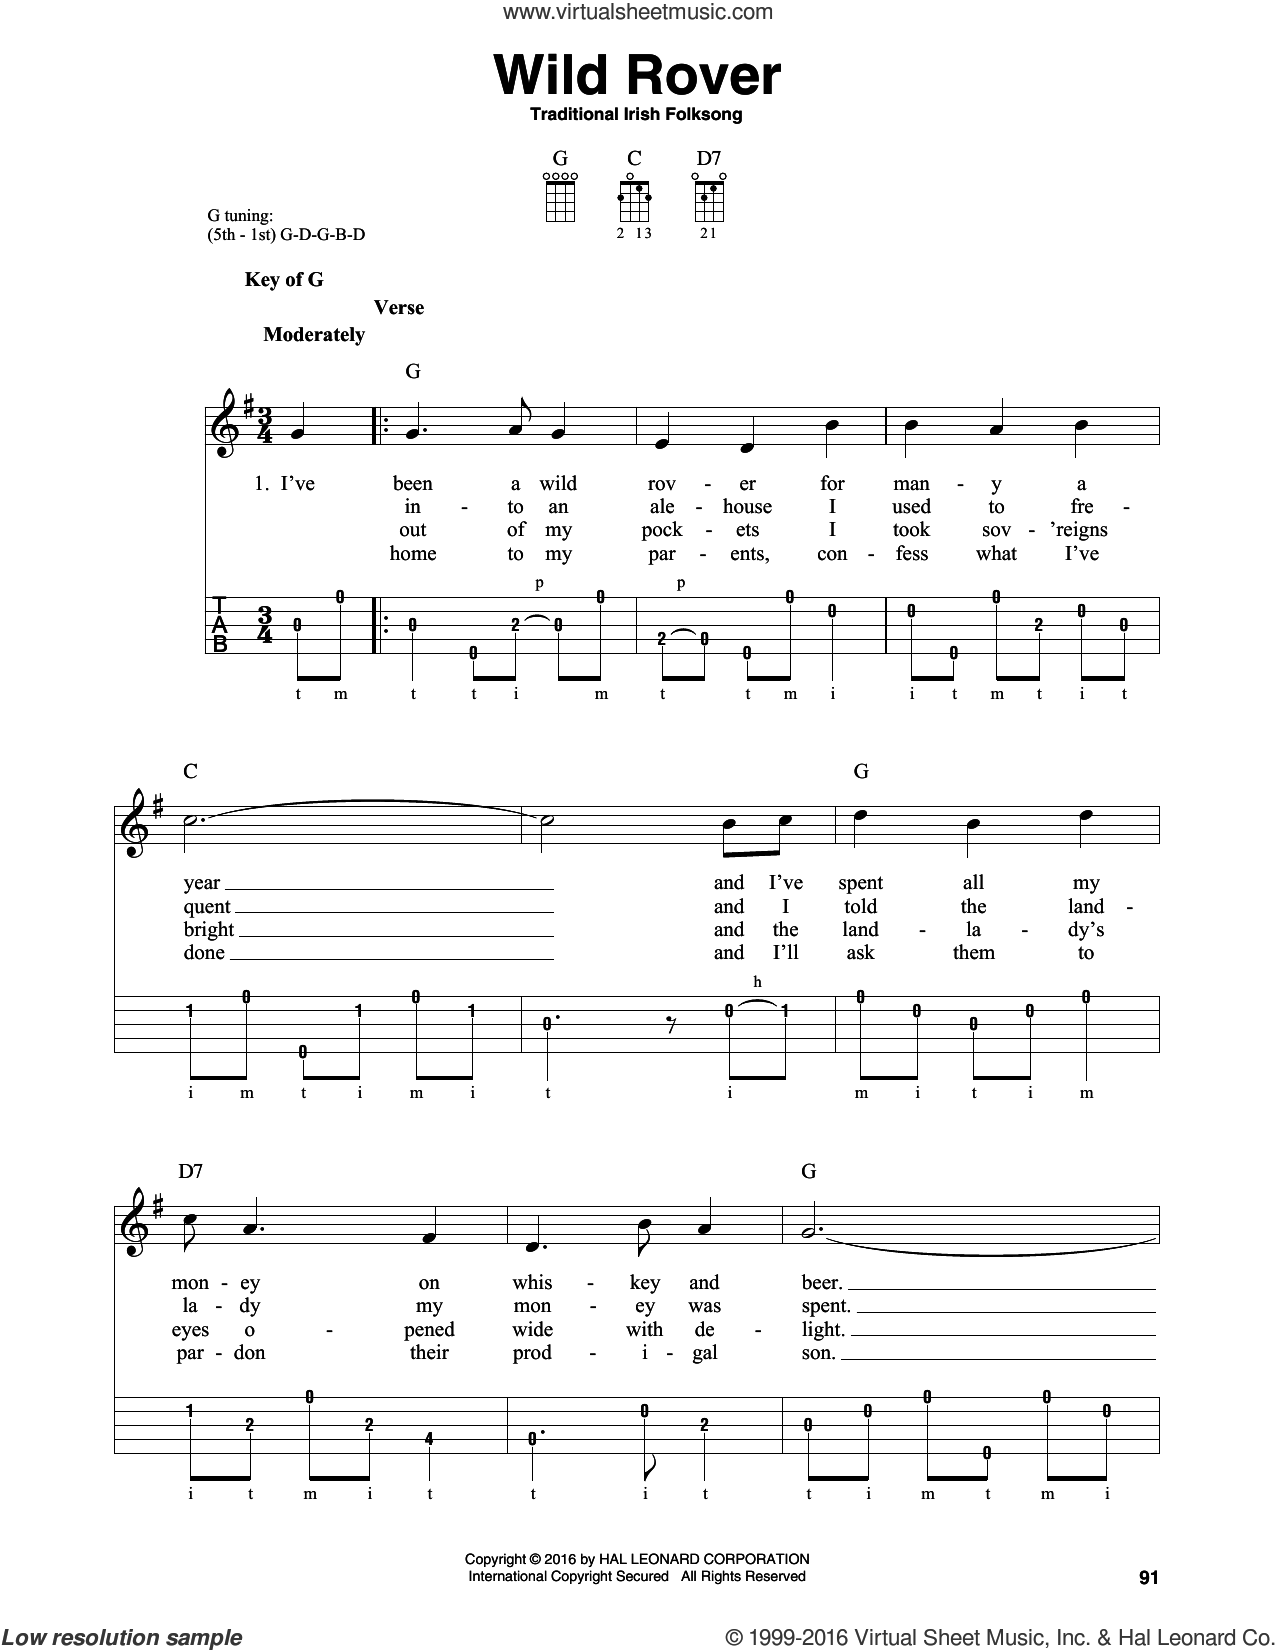 Wild Rover sheet music for banjo solo, intermediate